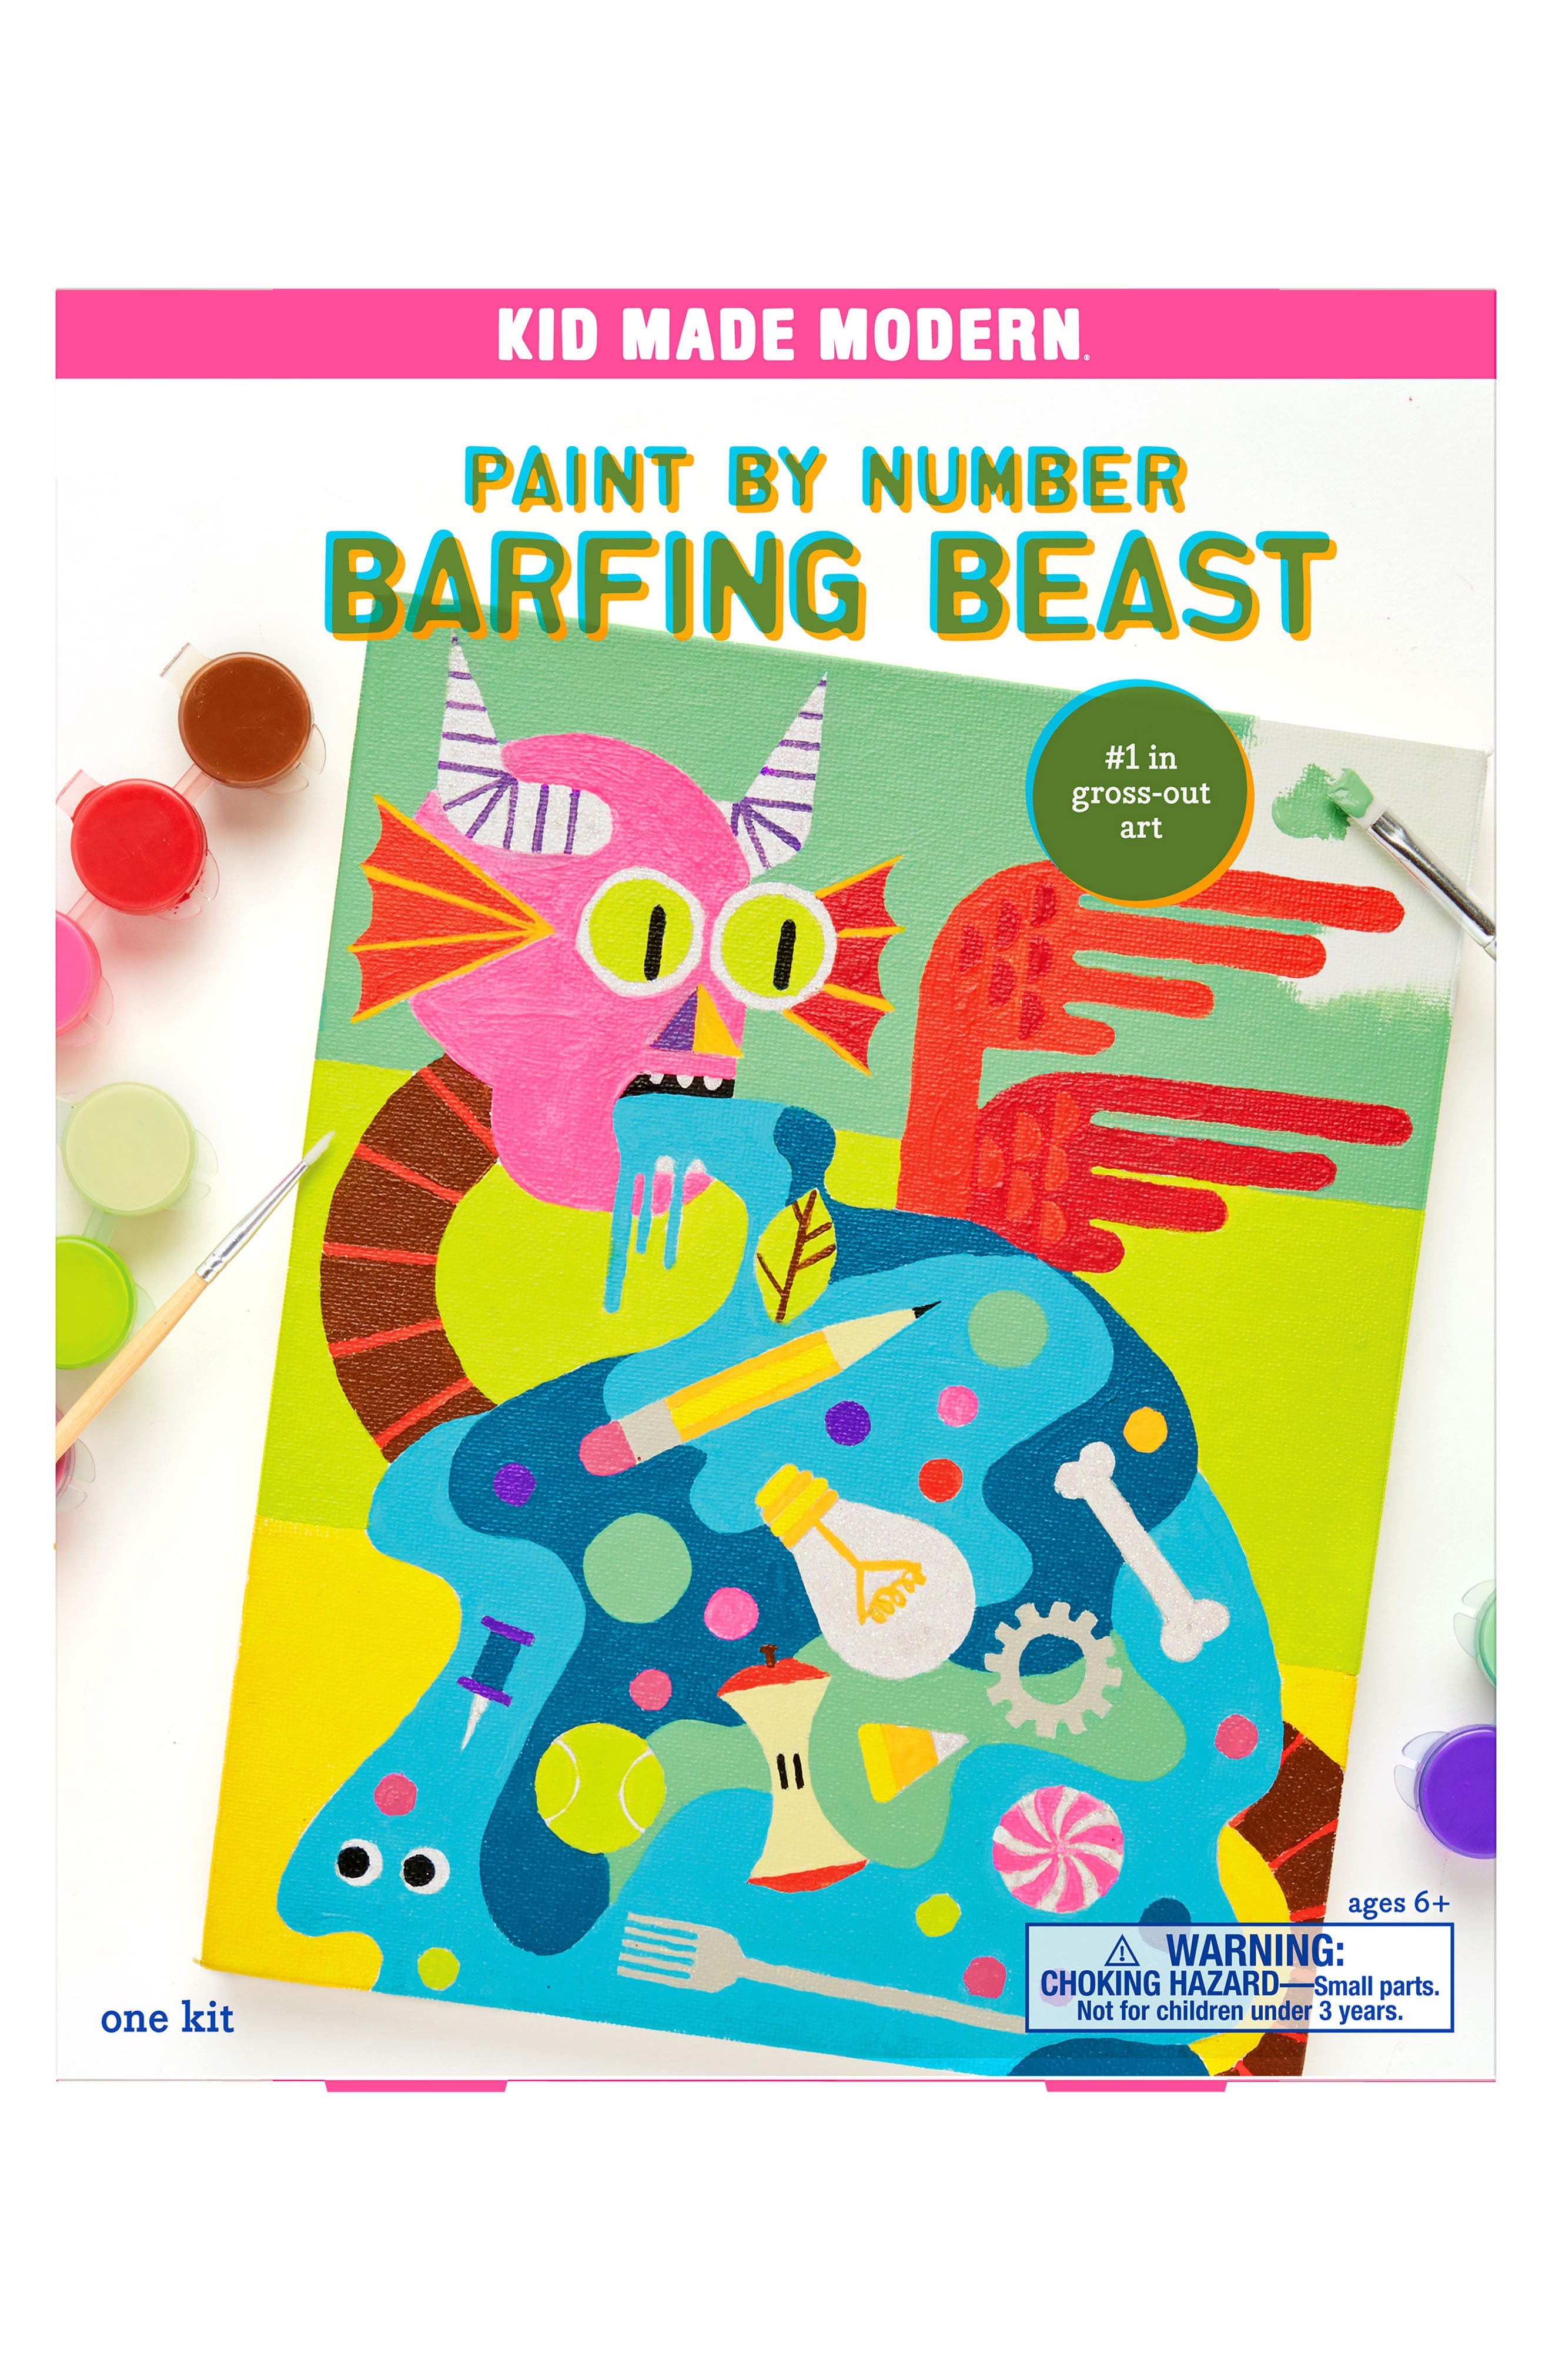 Barfing Beast Paint by Number Kit,                         Main,                         color, Green